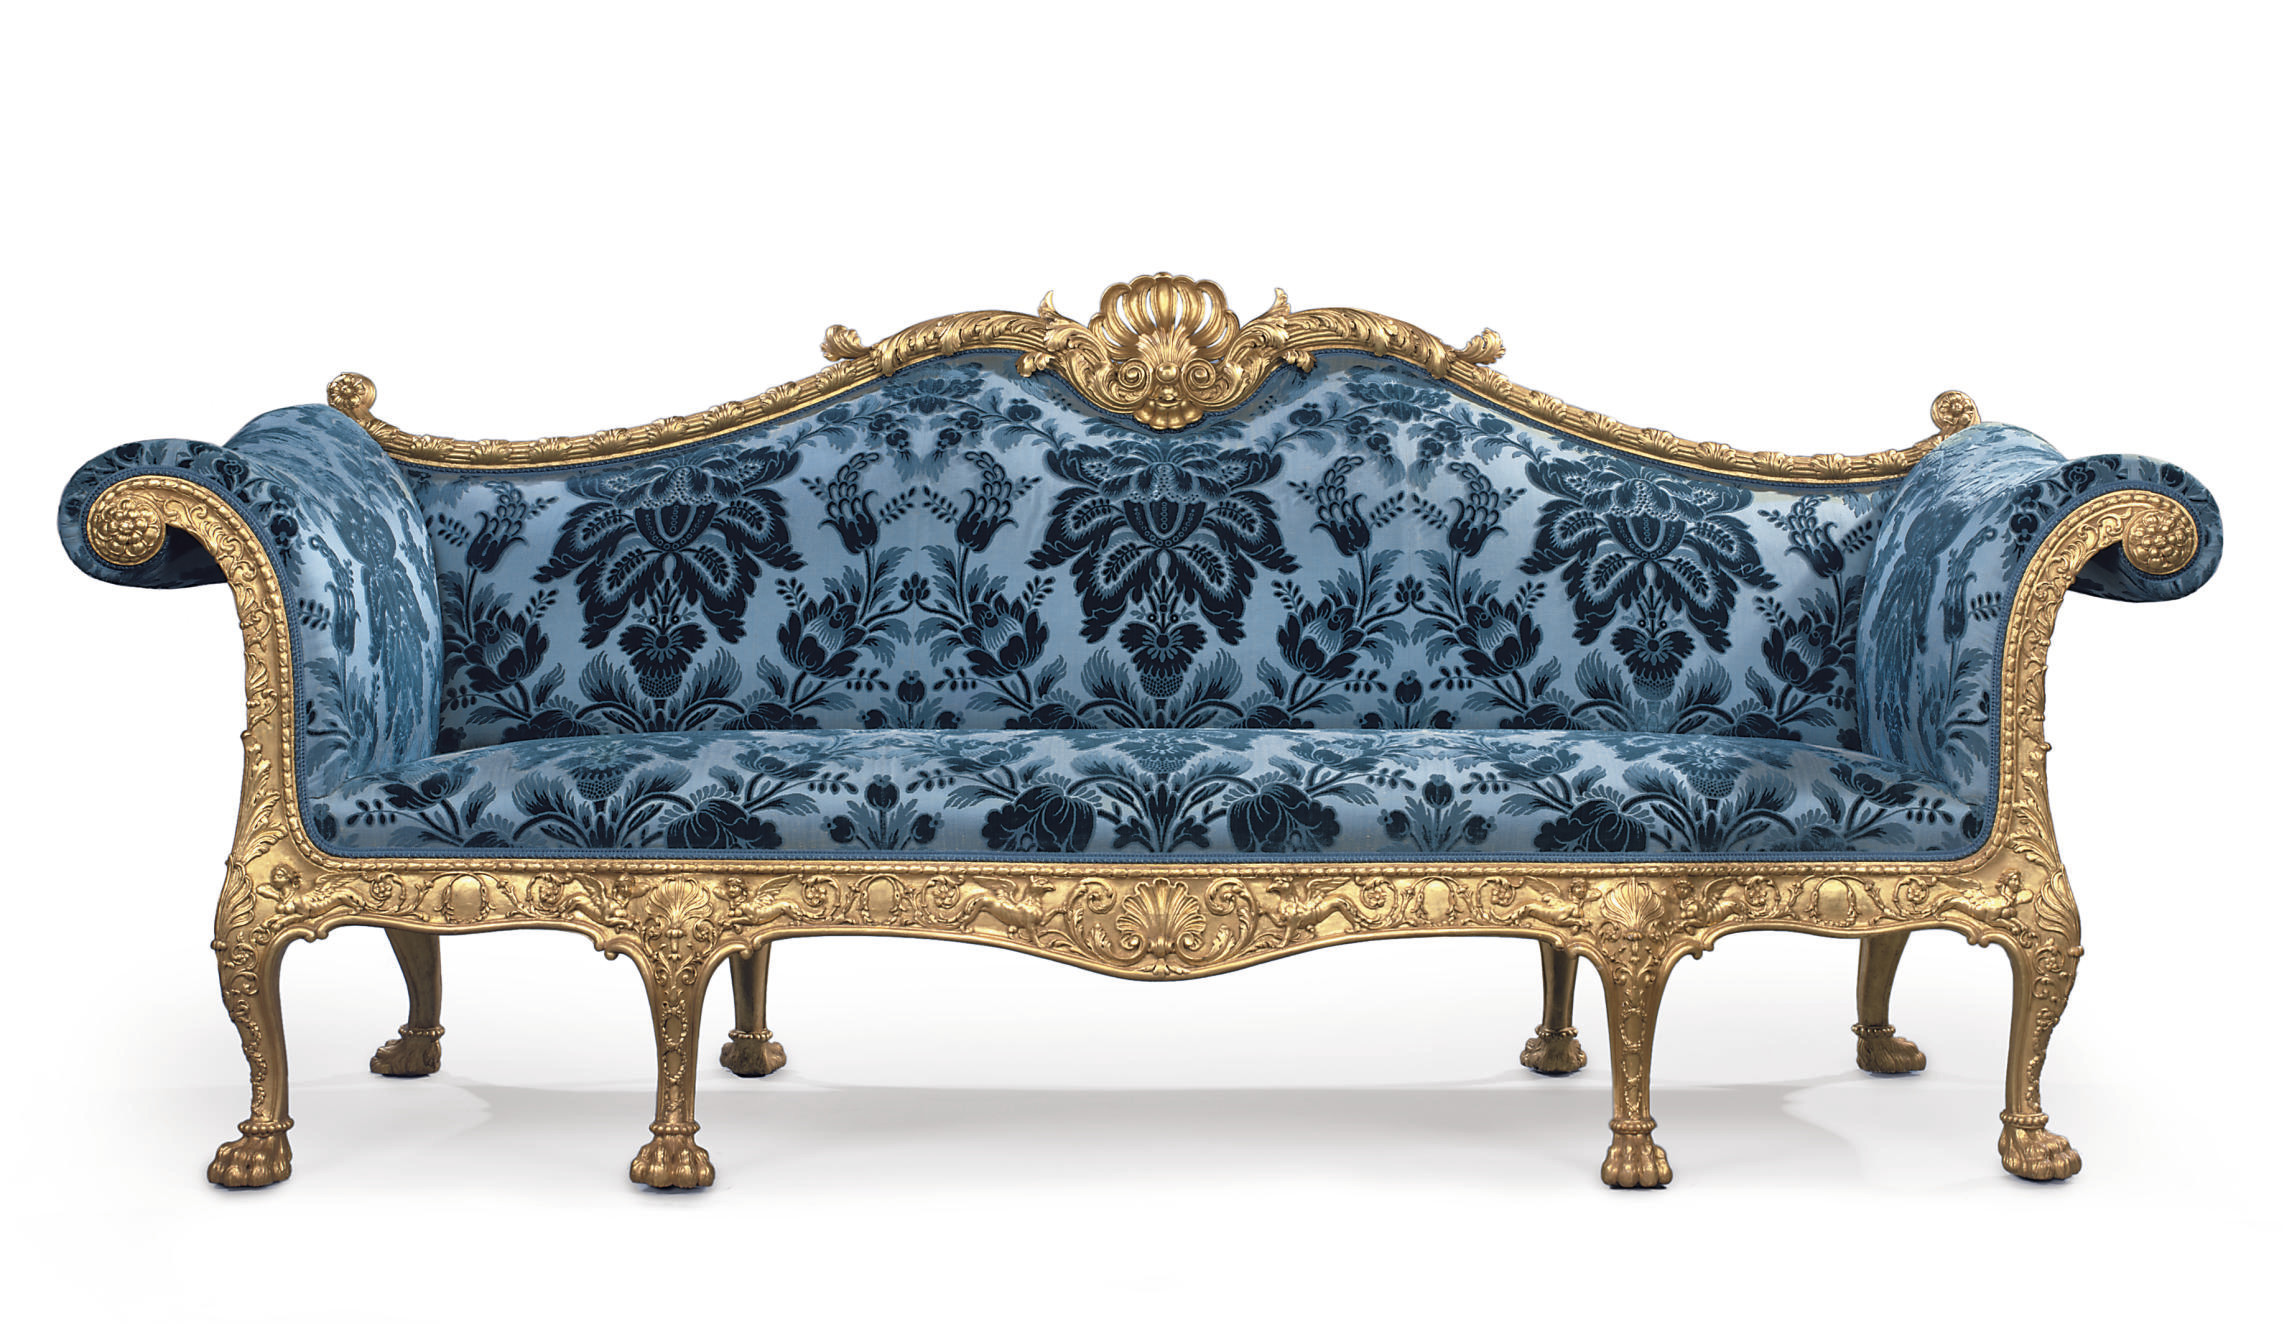 Tremendous A George Iii Giltwood Sofa Designed By Robert Adam And Machost Co Dining Chair Design Ideas Machostcouk